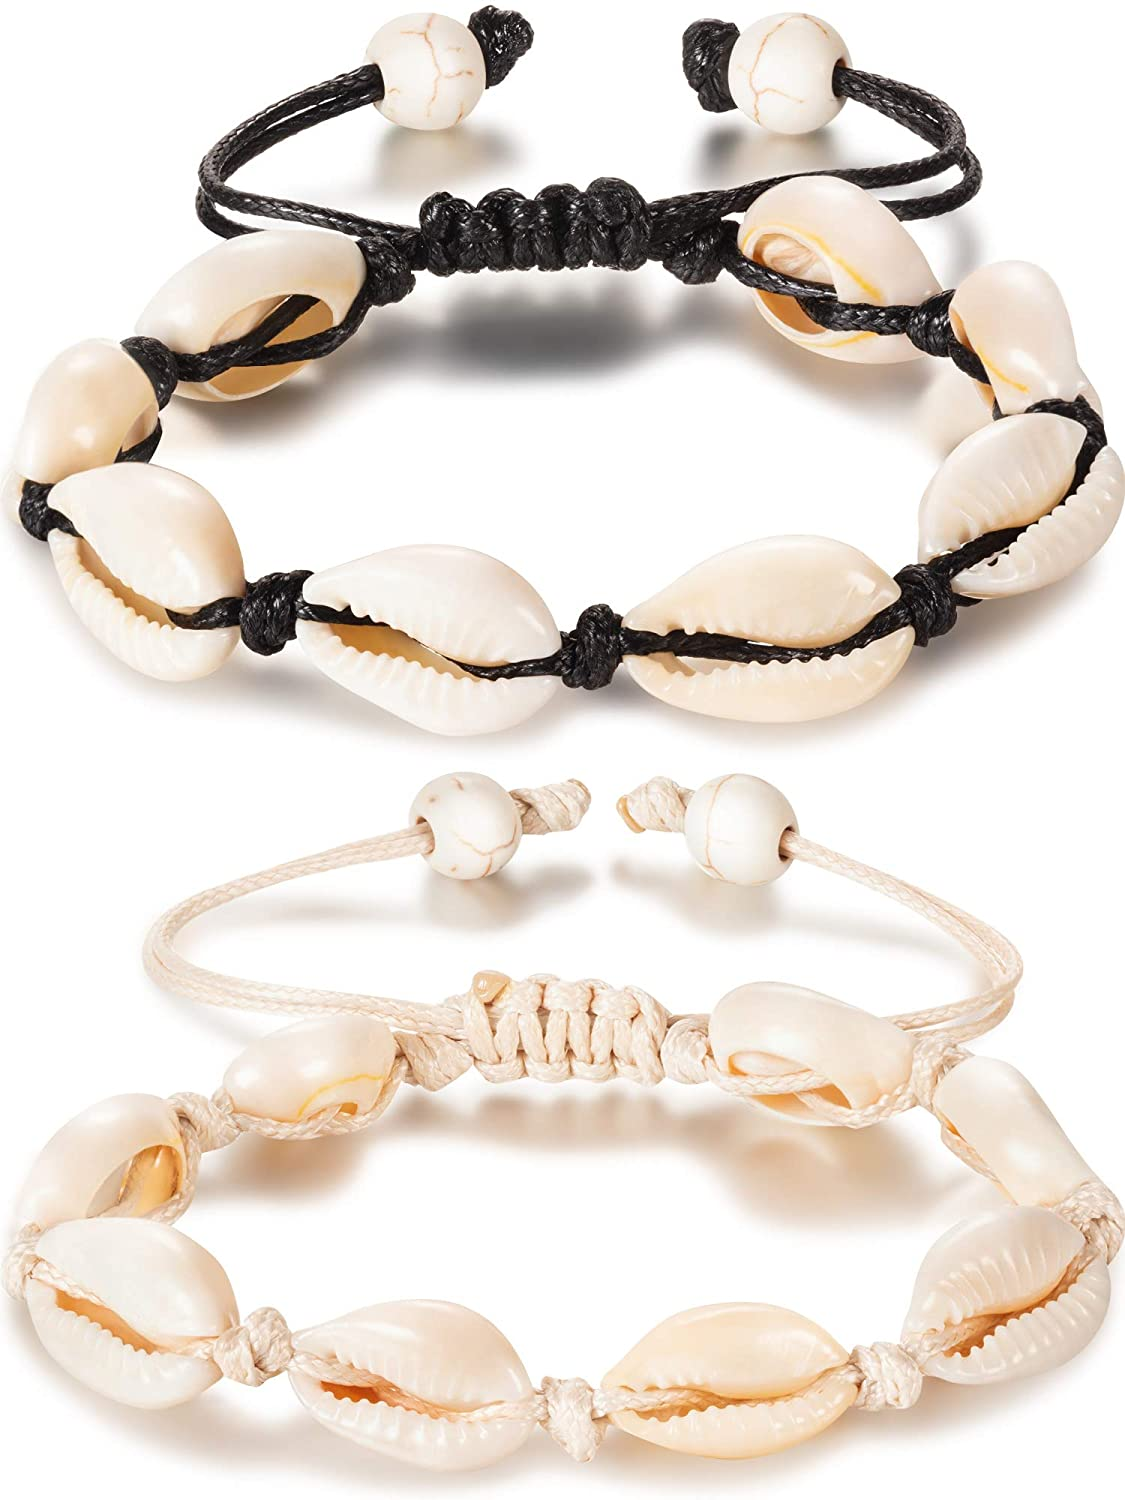 meekoo 2 Pieces Natural Shell Anklet Bracelet Handmade Beach Foot Jewelry Adjustable Boho Beaded Anklet for Women and Girls (Style A)